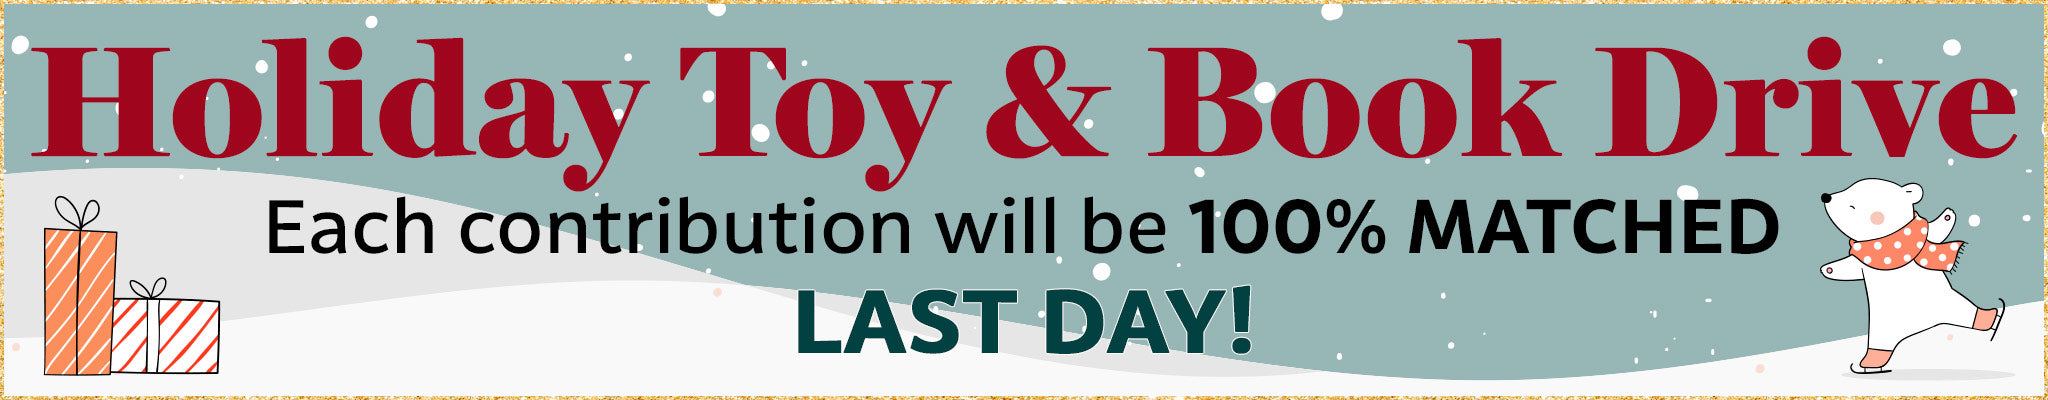 Holiday Toy & Book Drive | LAST DAY | Contributions Matched 100%